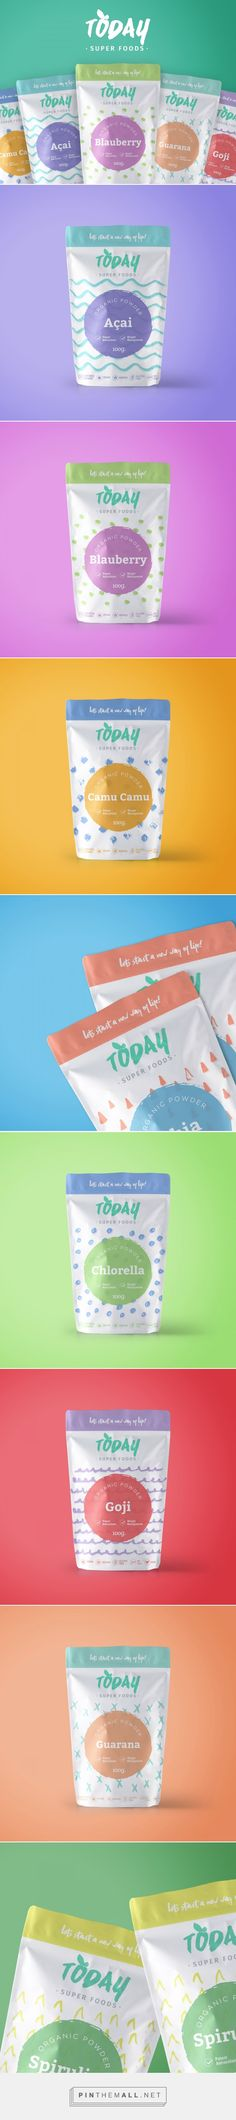 Today, Super Foods - Packaging of the World - Creative Package Design Gallery - http://www.packagingoftheworld.com/2016/07/today-super-foods.html